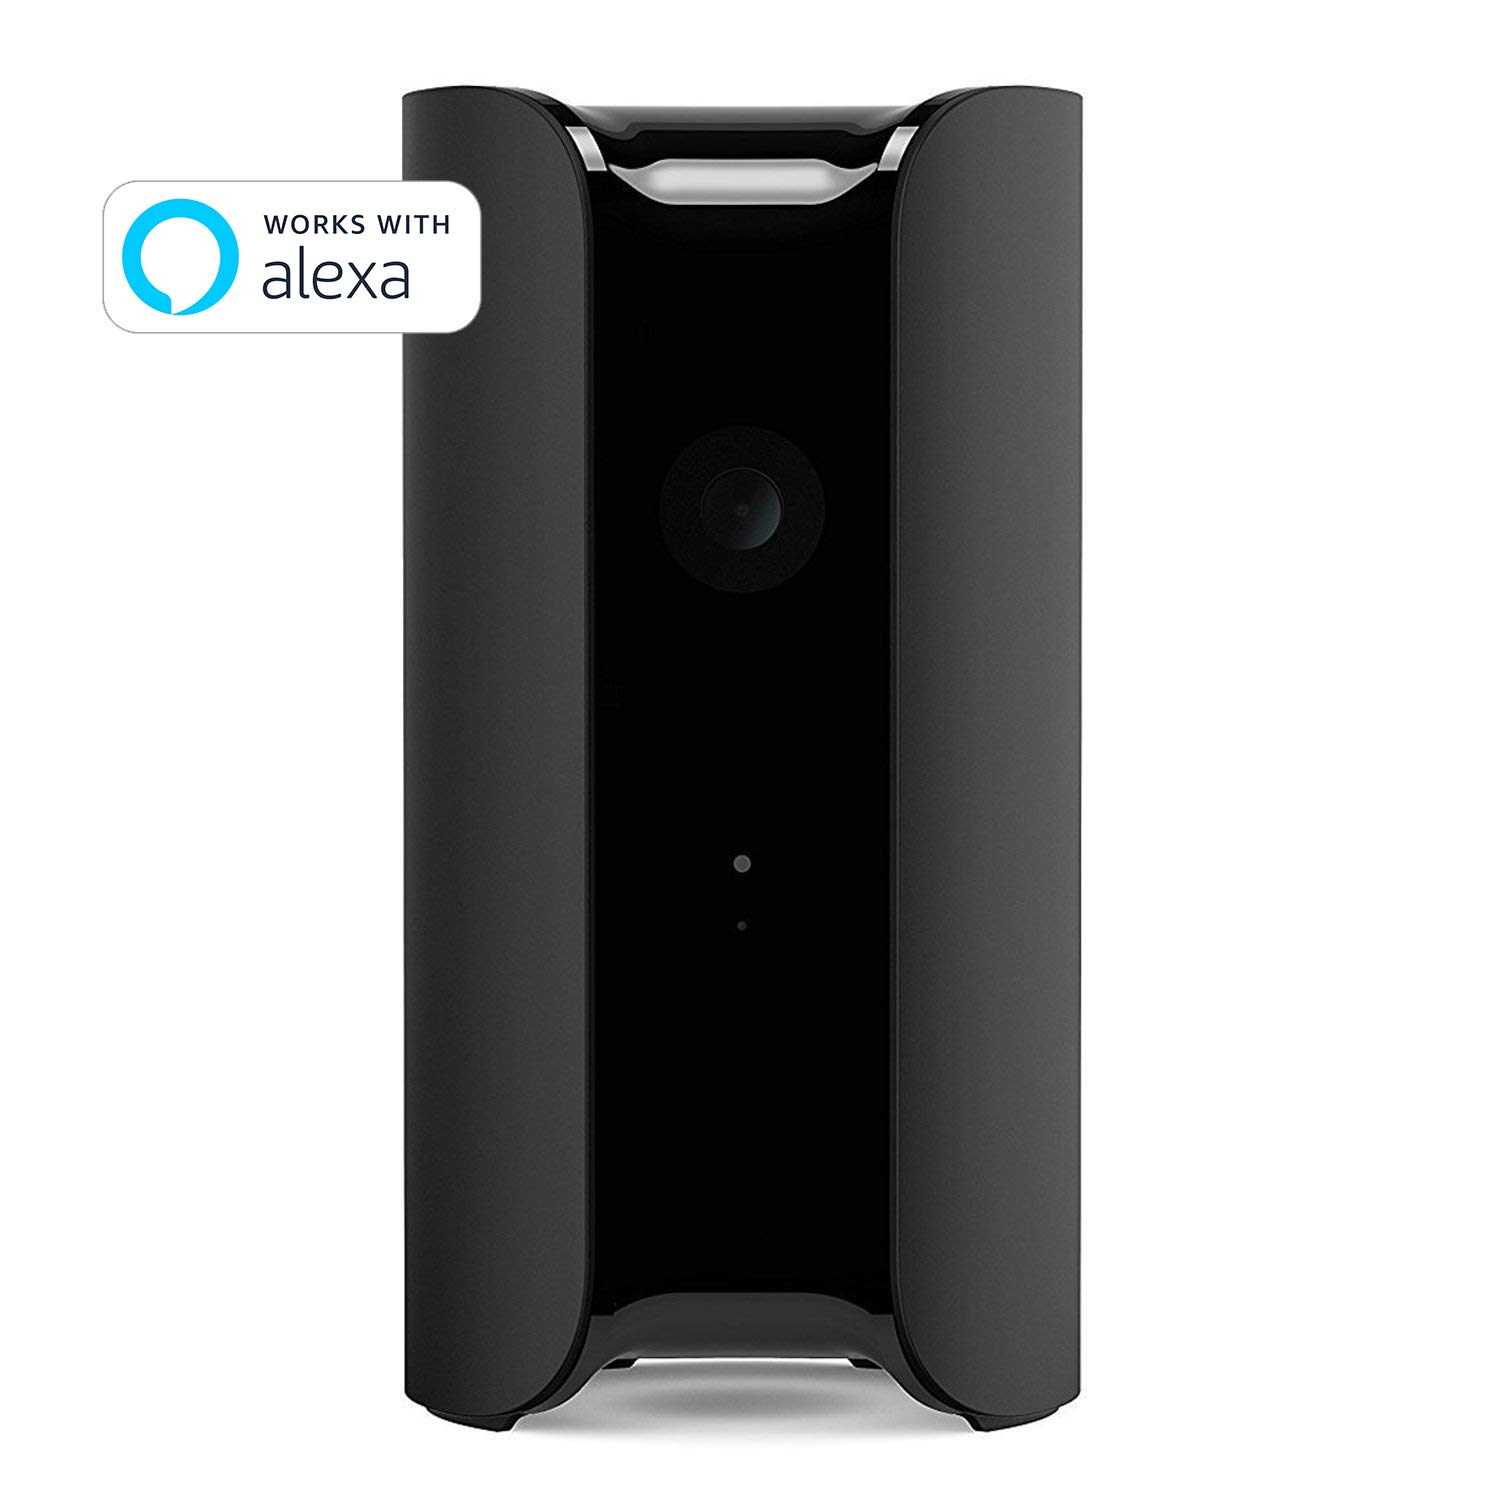 CANARY (CAN100USBK) All-in-One Indoor 1080p HD Security Camera with Built-in Siren and Climate Monitor, Motion / Person / Air Quality Alerts, Works with Alexa, Insurance Discount Eligible - Black by Canary